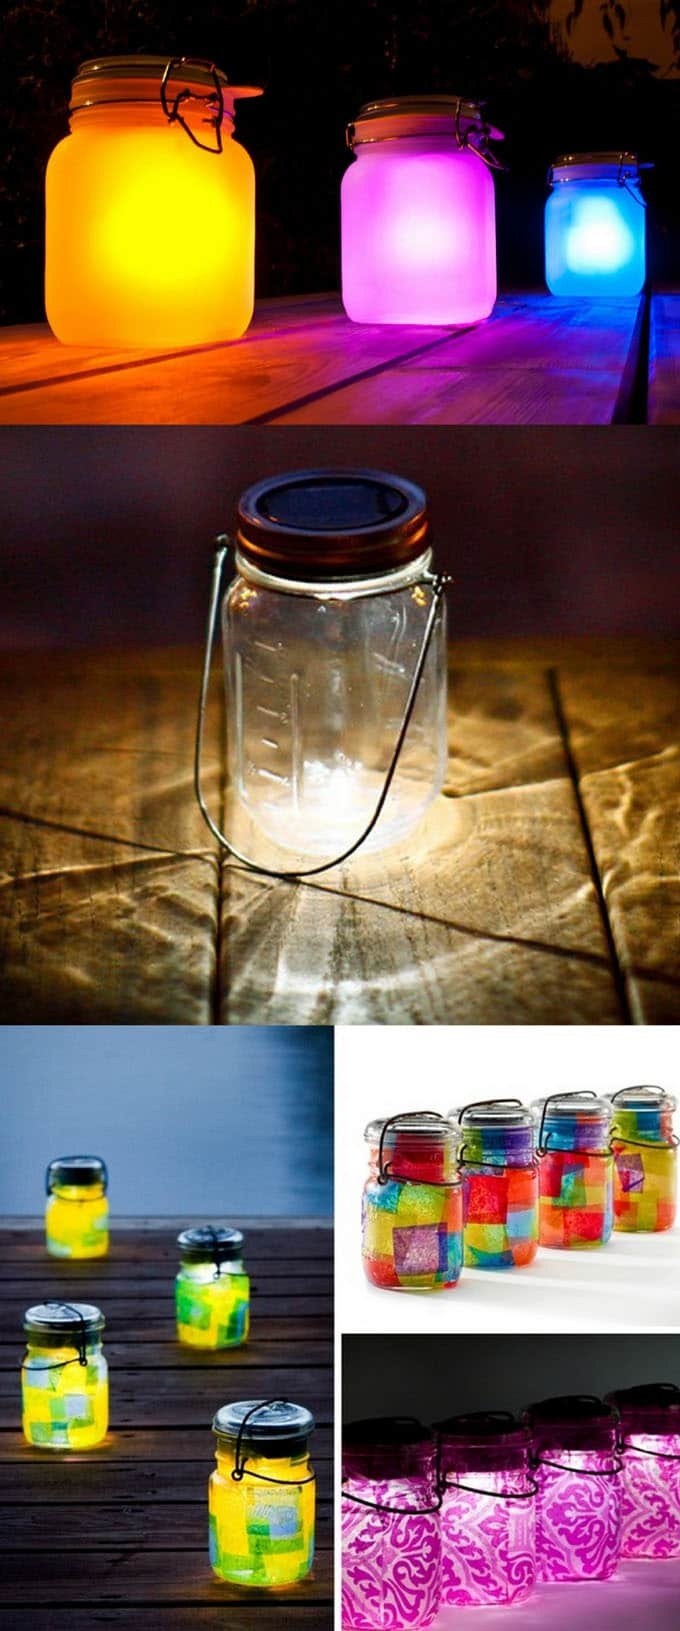 Outdoor Lighting Ideas Diy 28 stunning diy outdoor lighting ideas so easy a piece of diy outdoor lights apieceofrainbowblog 5 workwithnaturefo